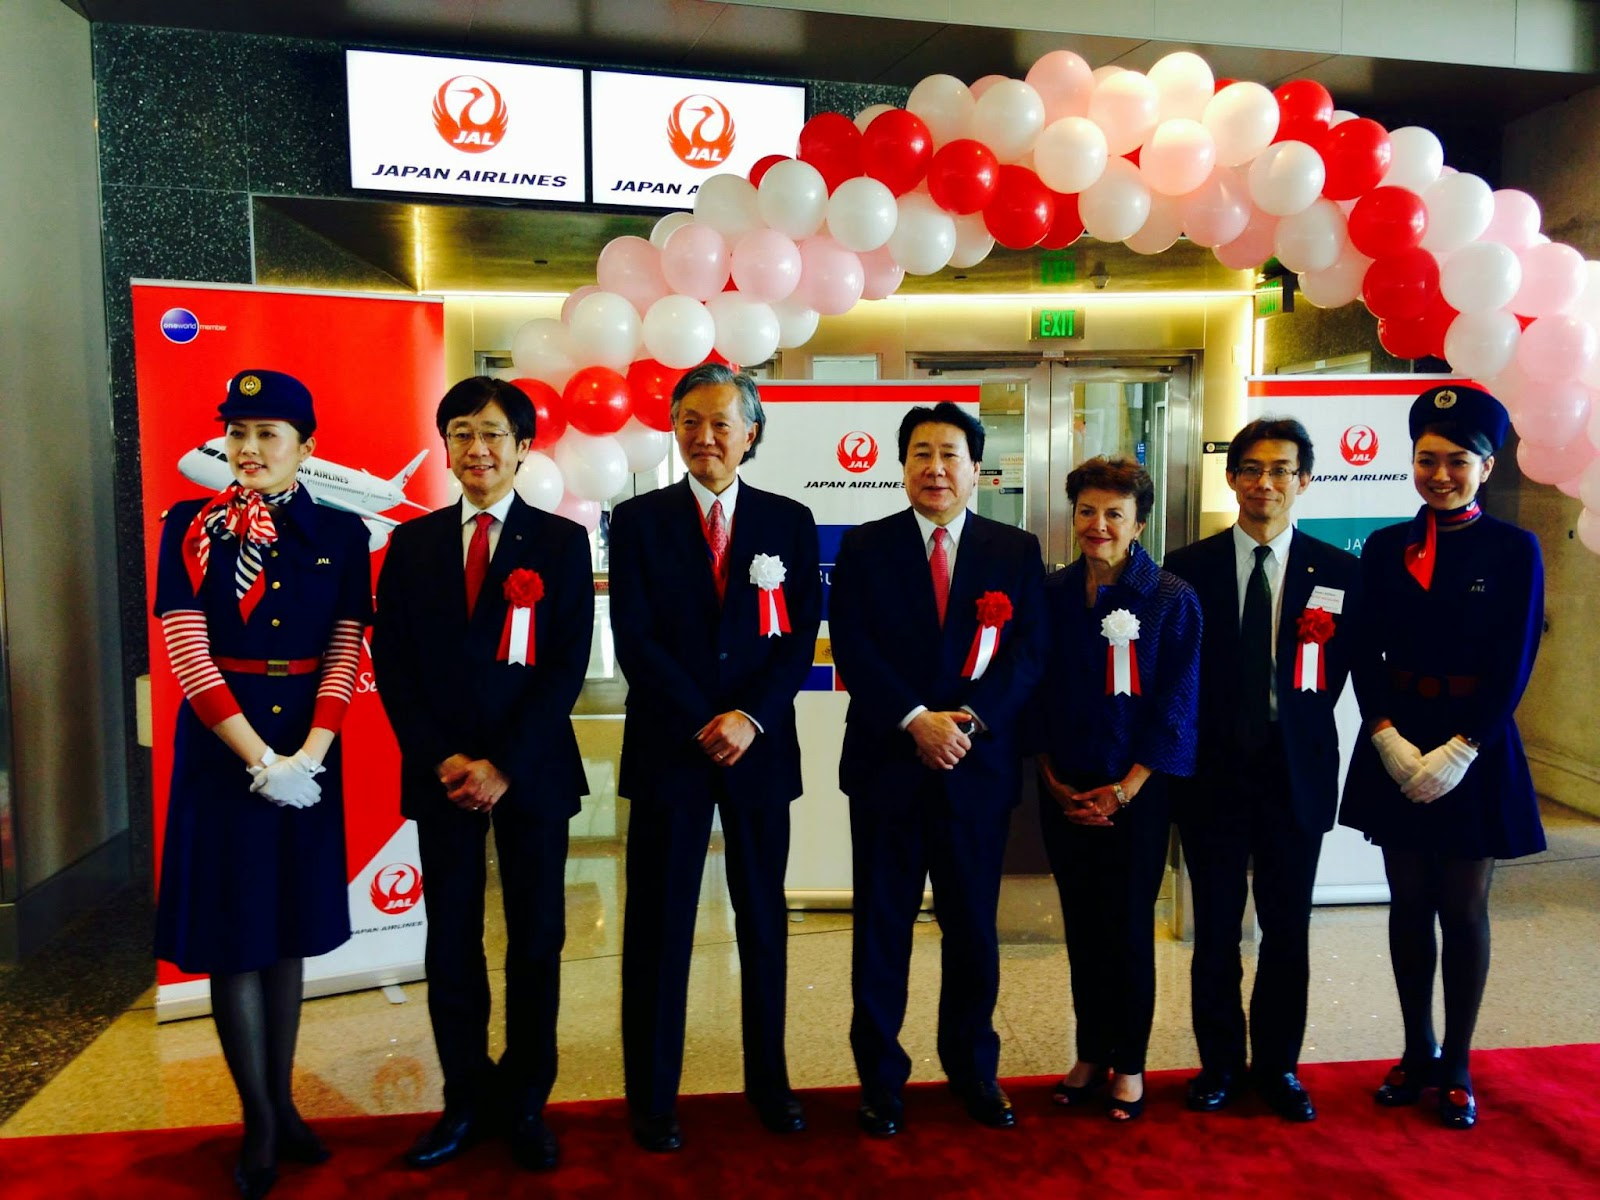 JAL President Ueki at JL069 inaugural ceremony at LAX